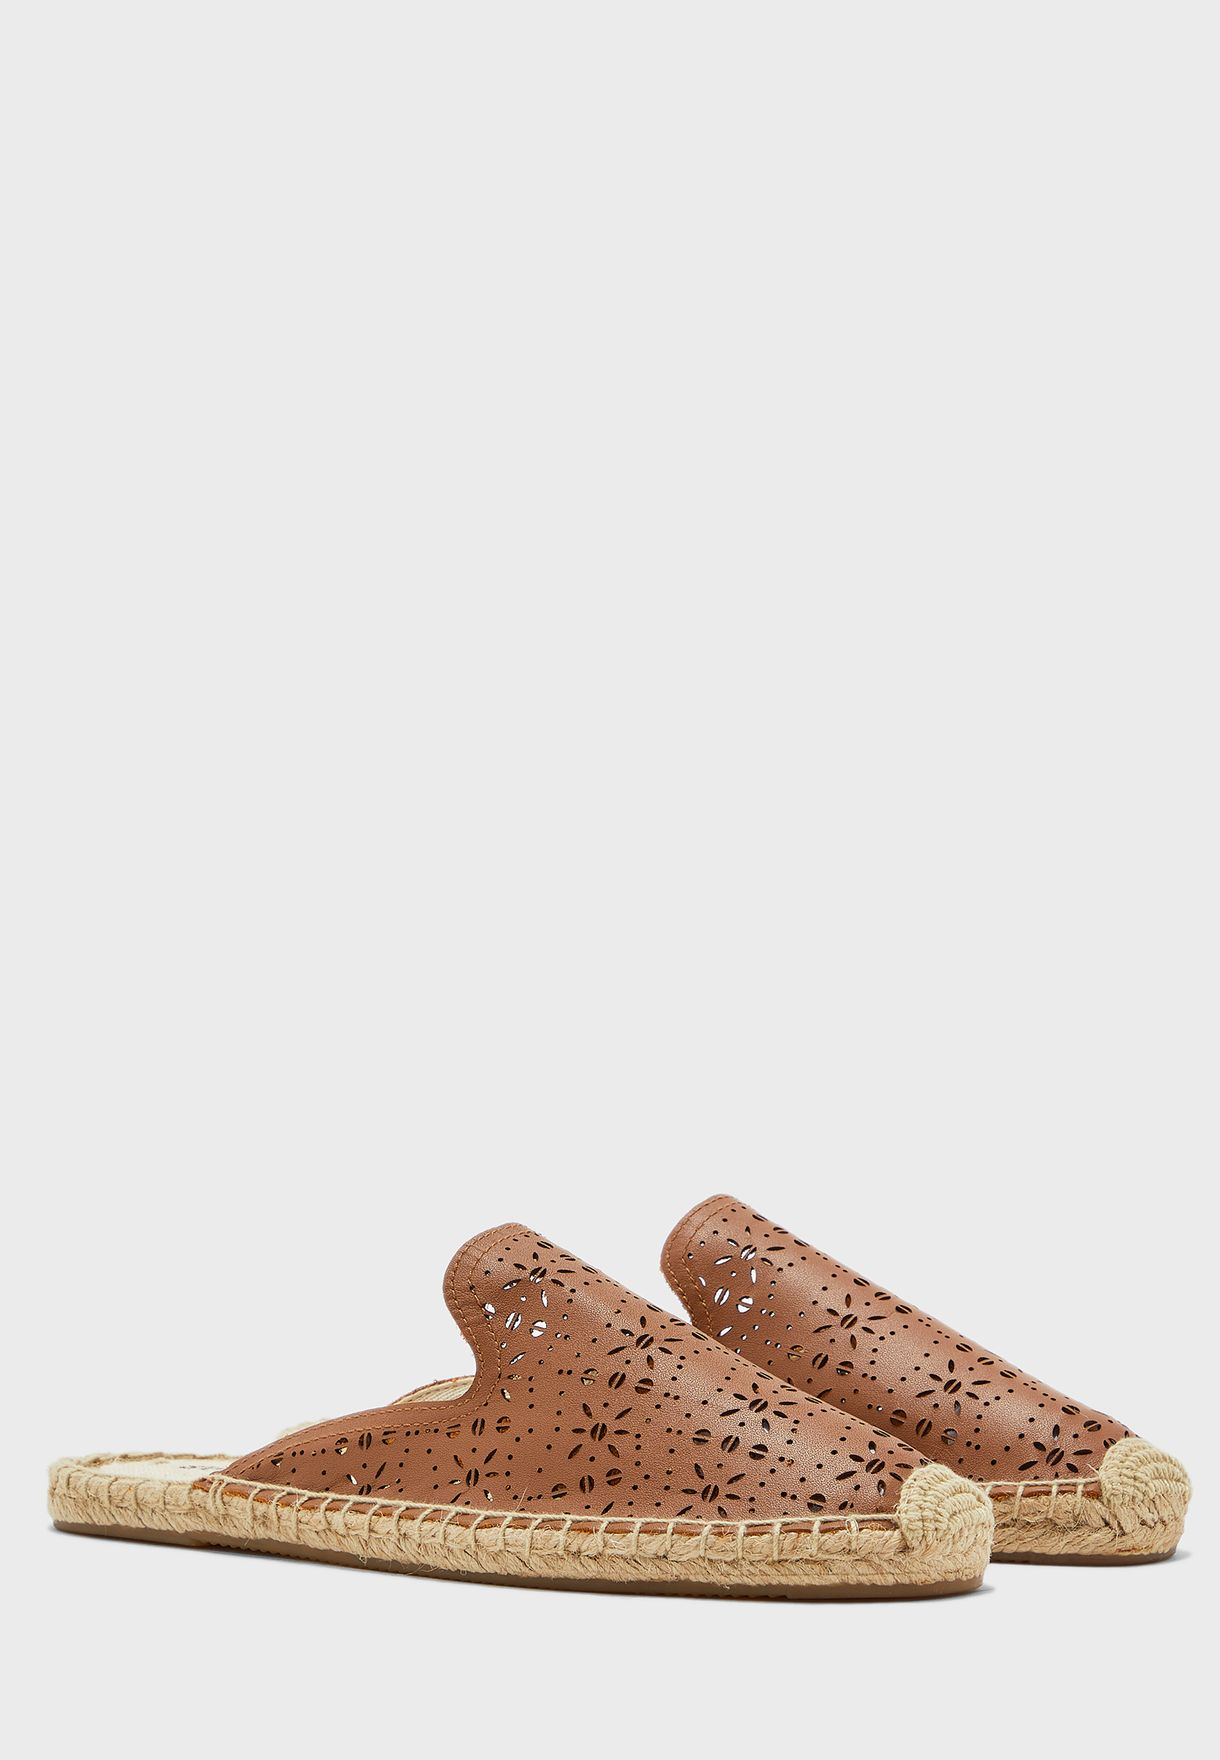 Ami Perforated Mule Slip On - Saddle